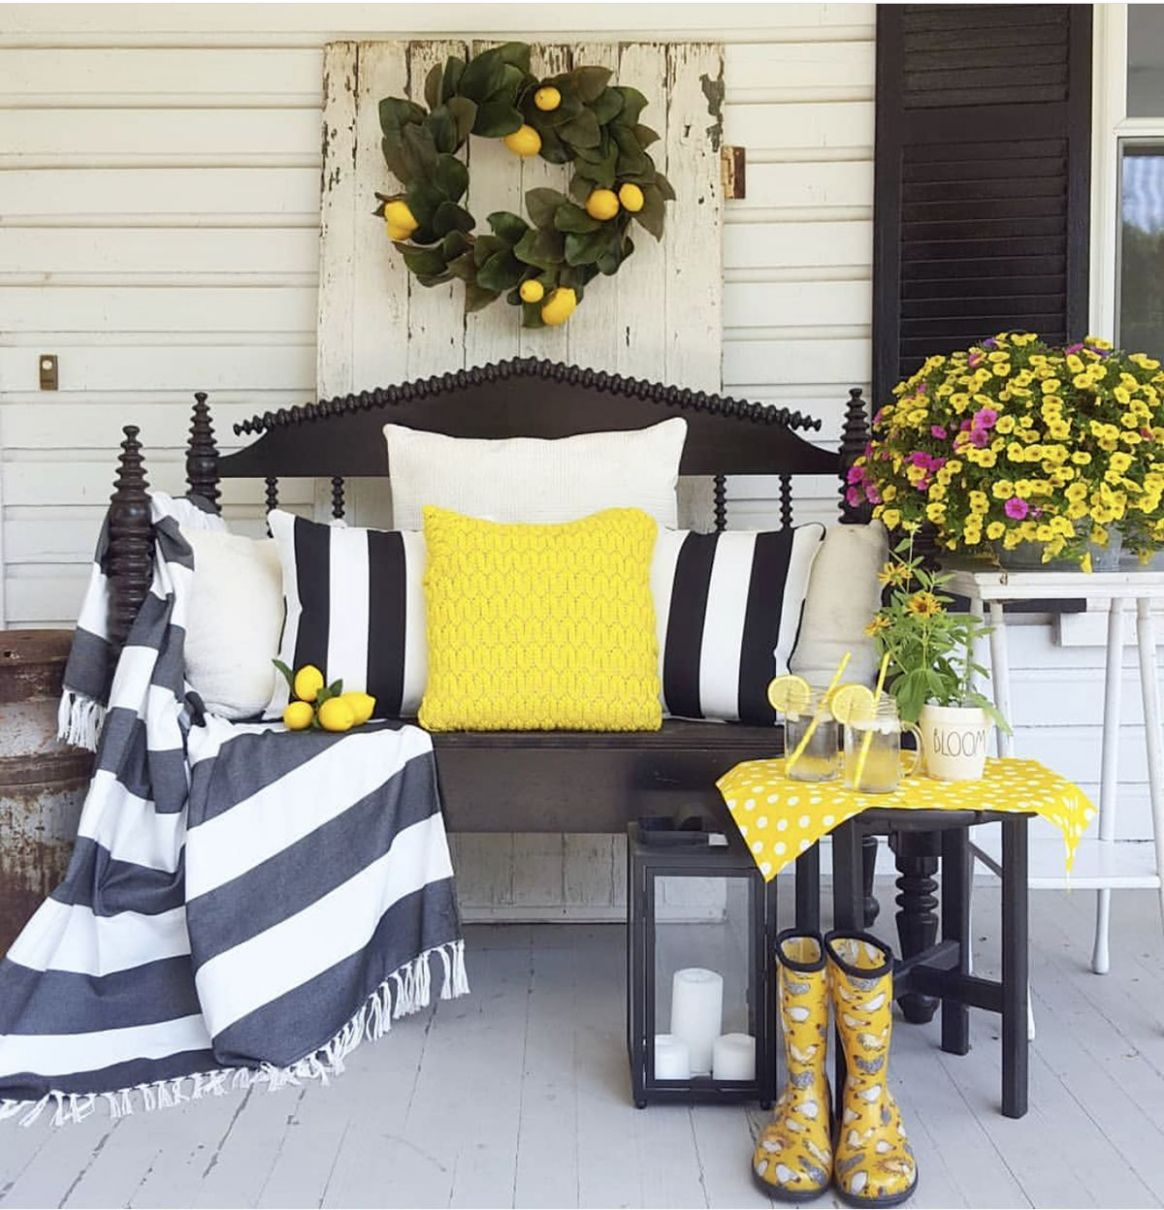 9 INSPIRING LEMON DECOR ideas FOR YOUR HOME (With images) | Lemon ..